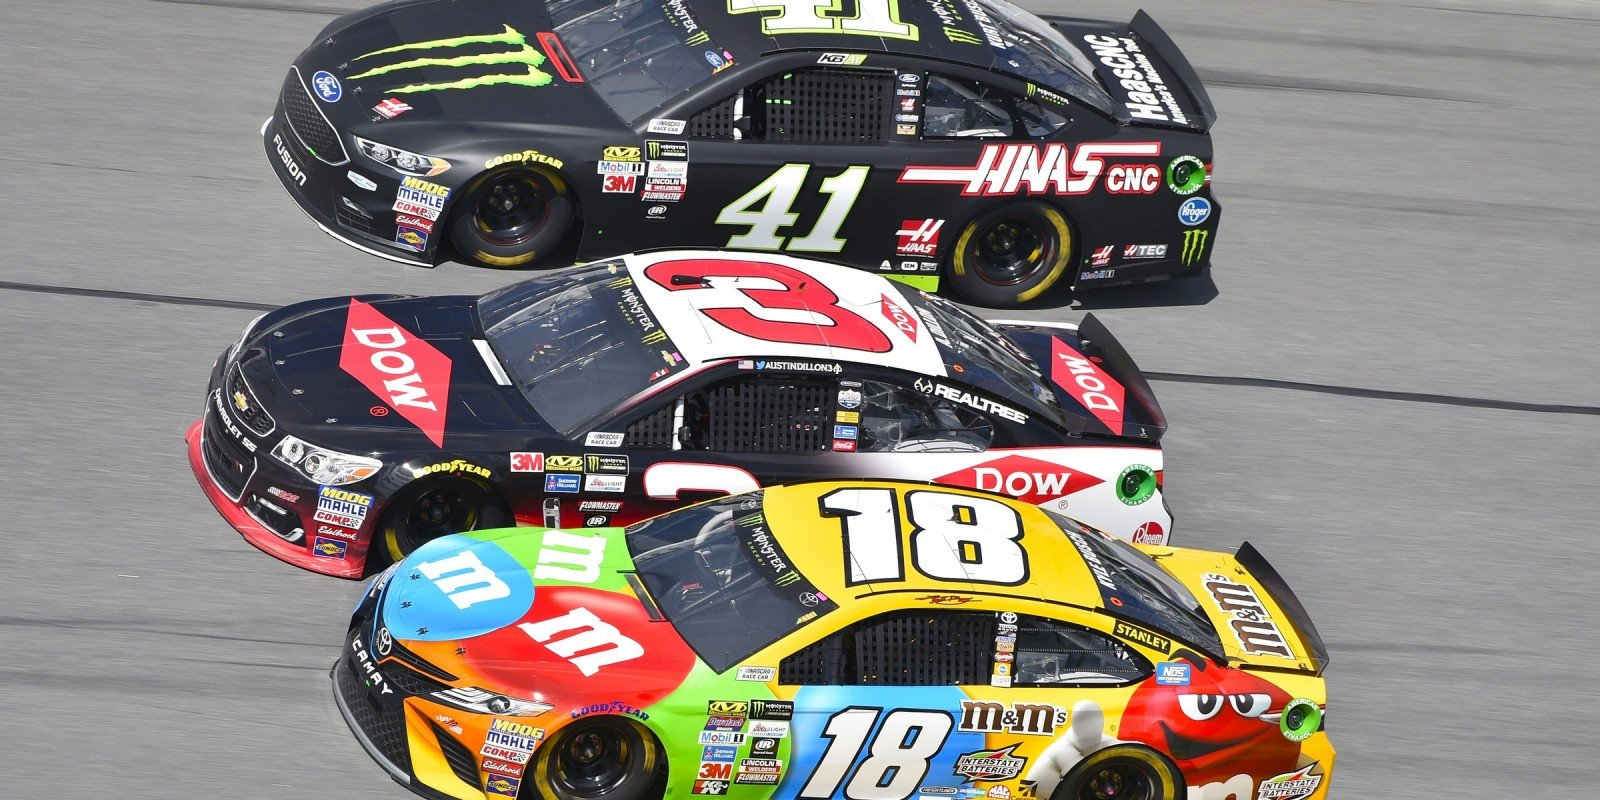 The 2017 Monster Energy Nascar Cup Series opener at Daytona Florida